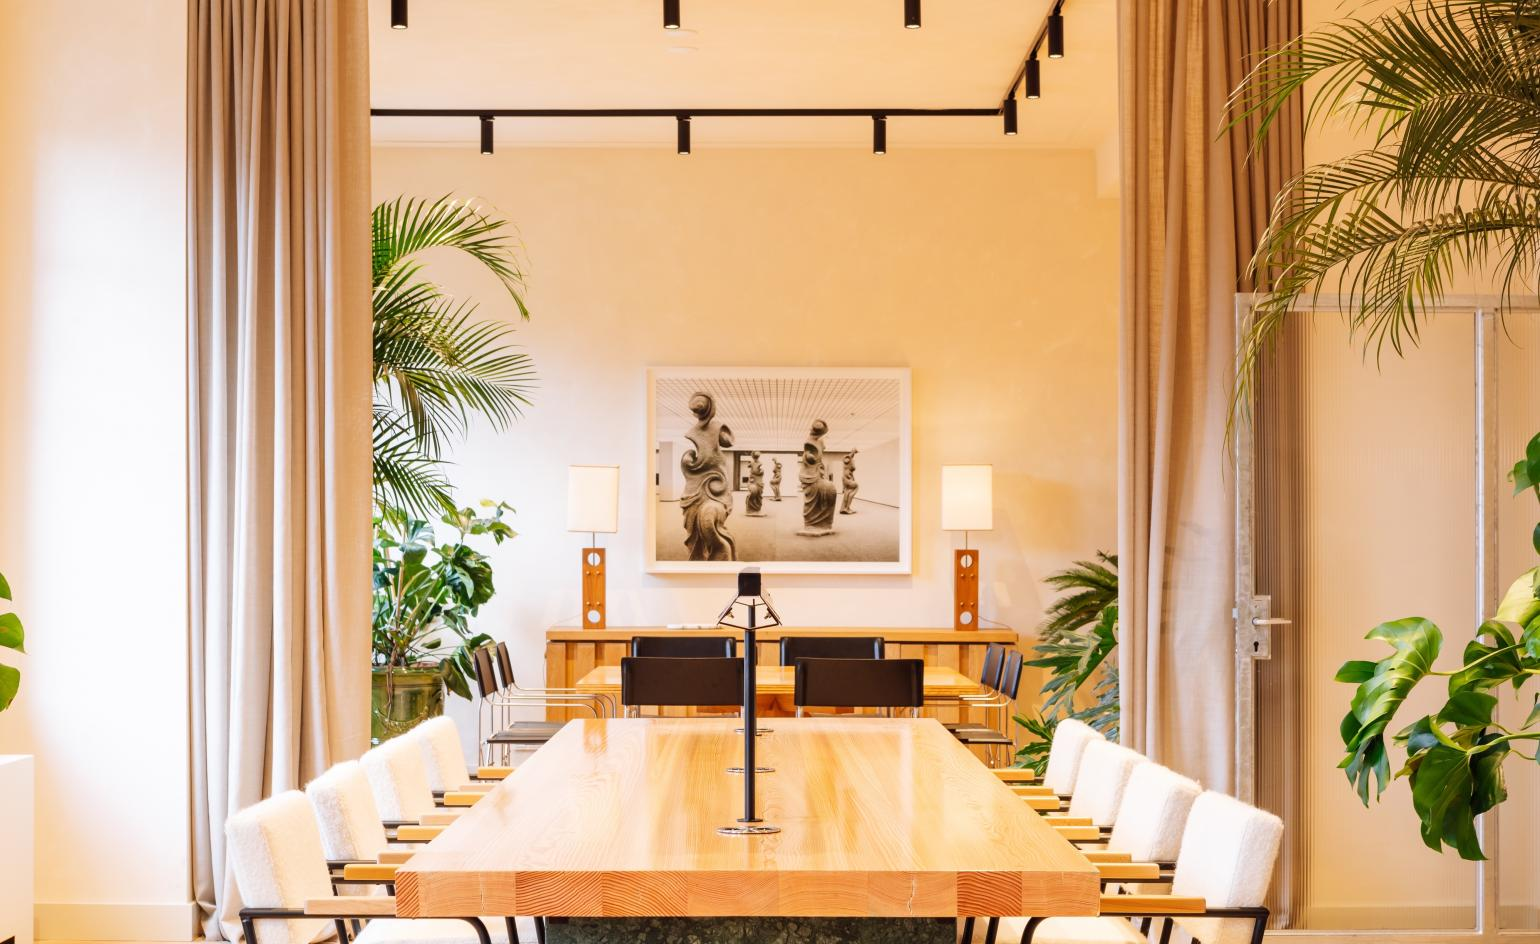 Amsterdam gains the first Fosbury & Sons venue outside Belgium